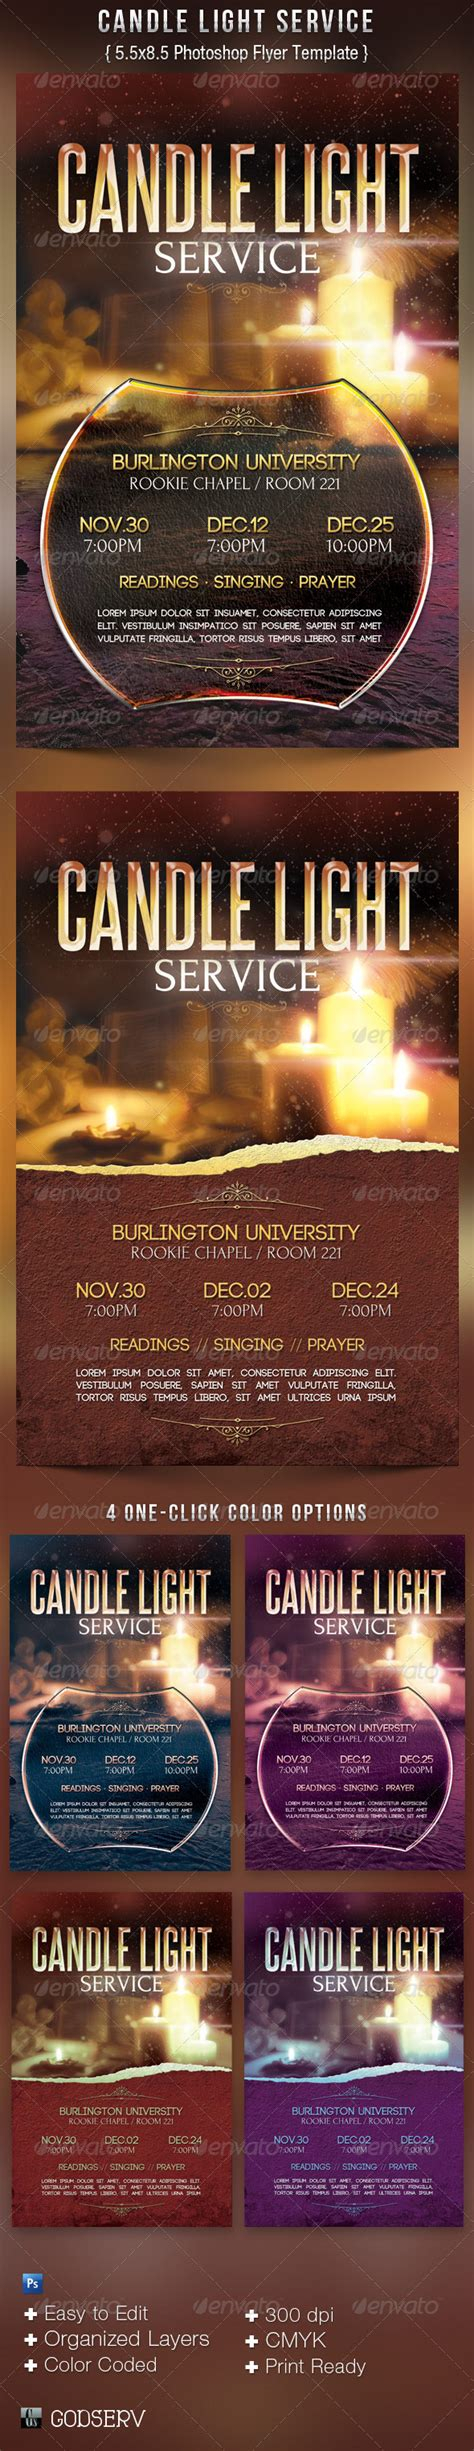 Candle Light Service Flyer Templates On Behance Lights Flyer Template